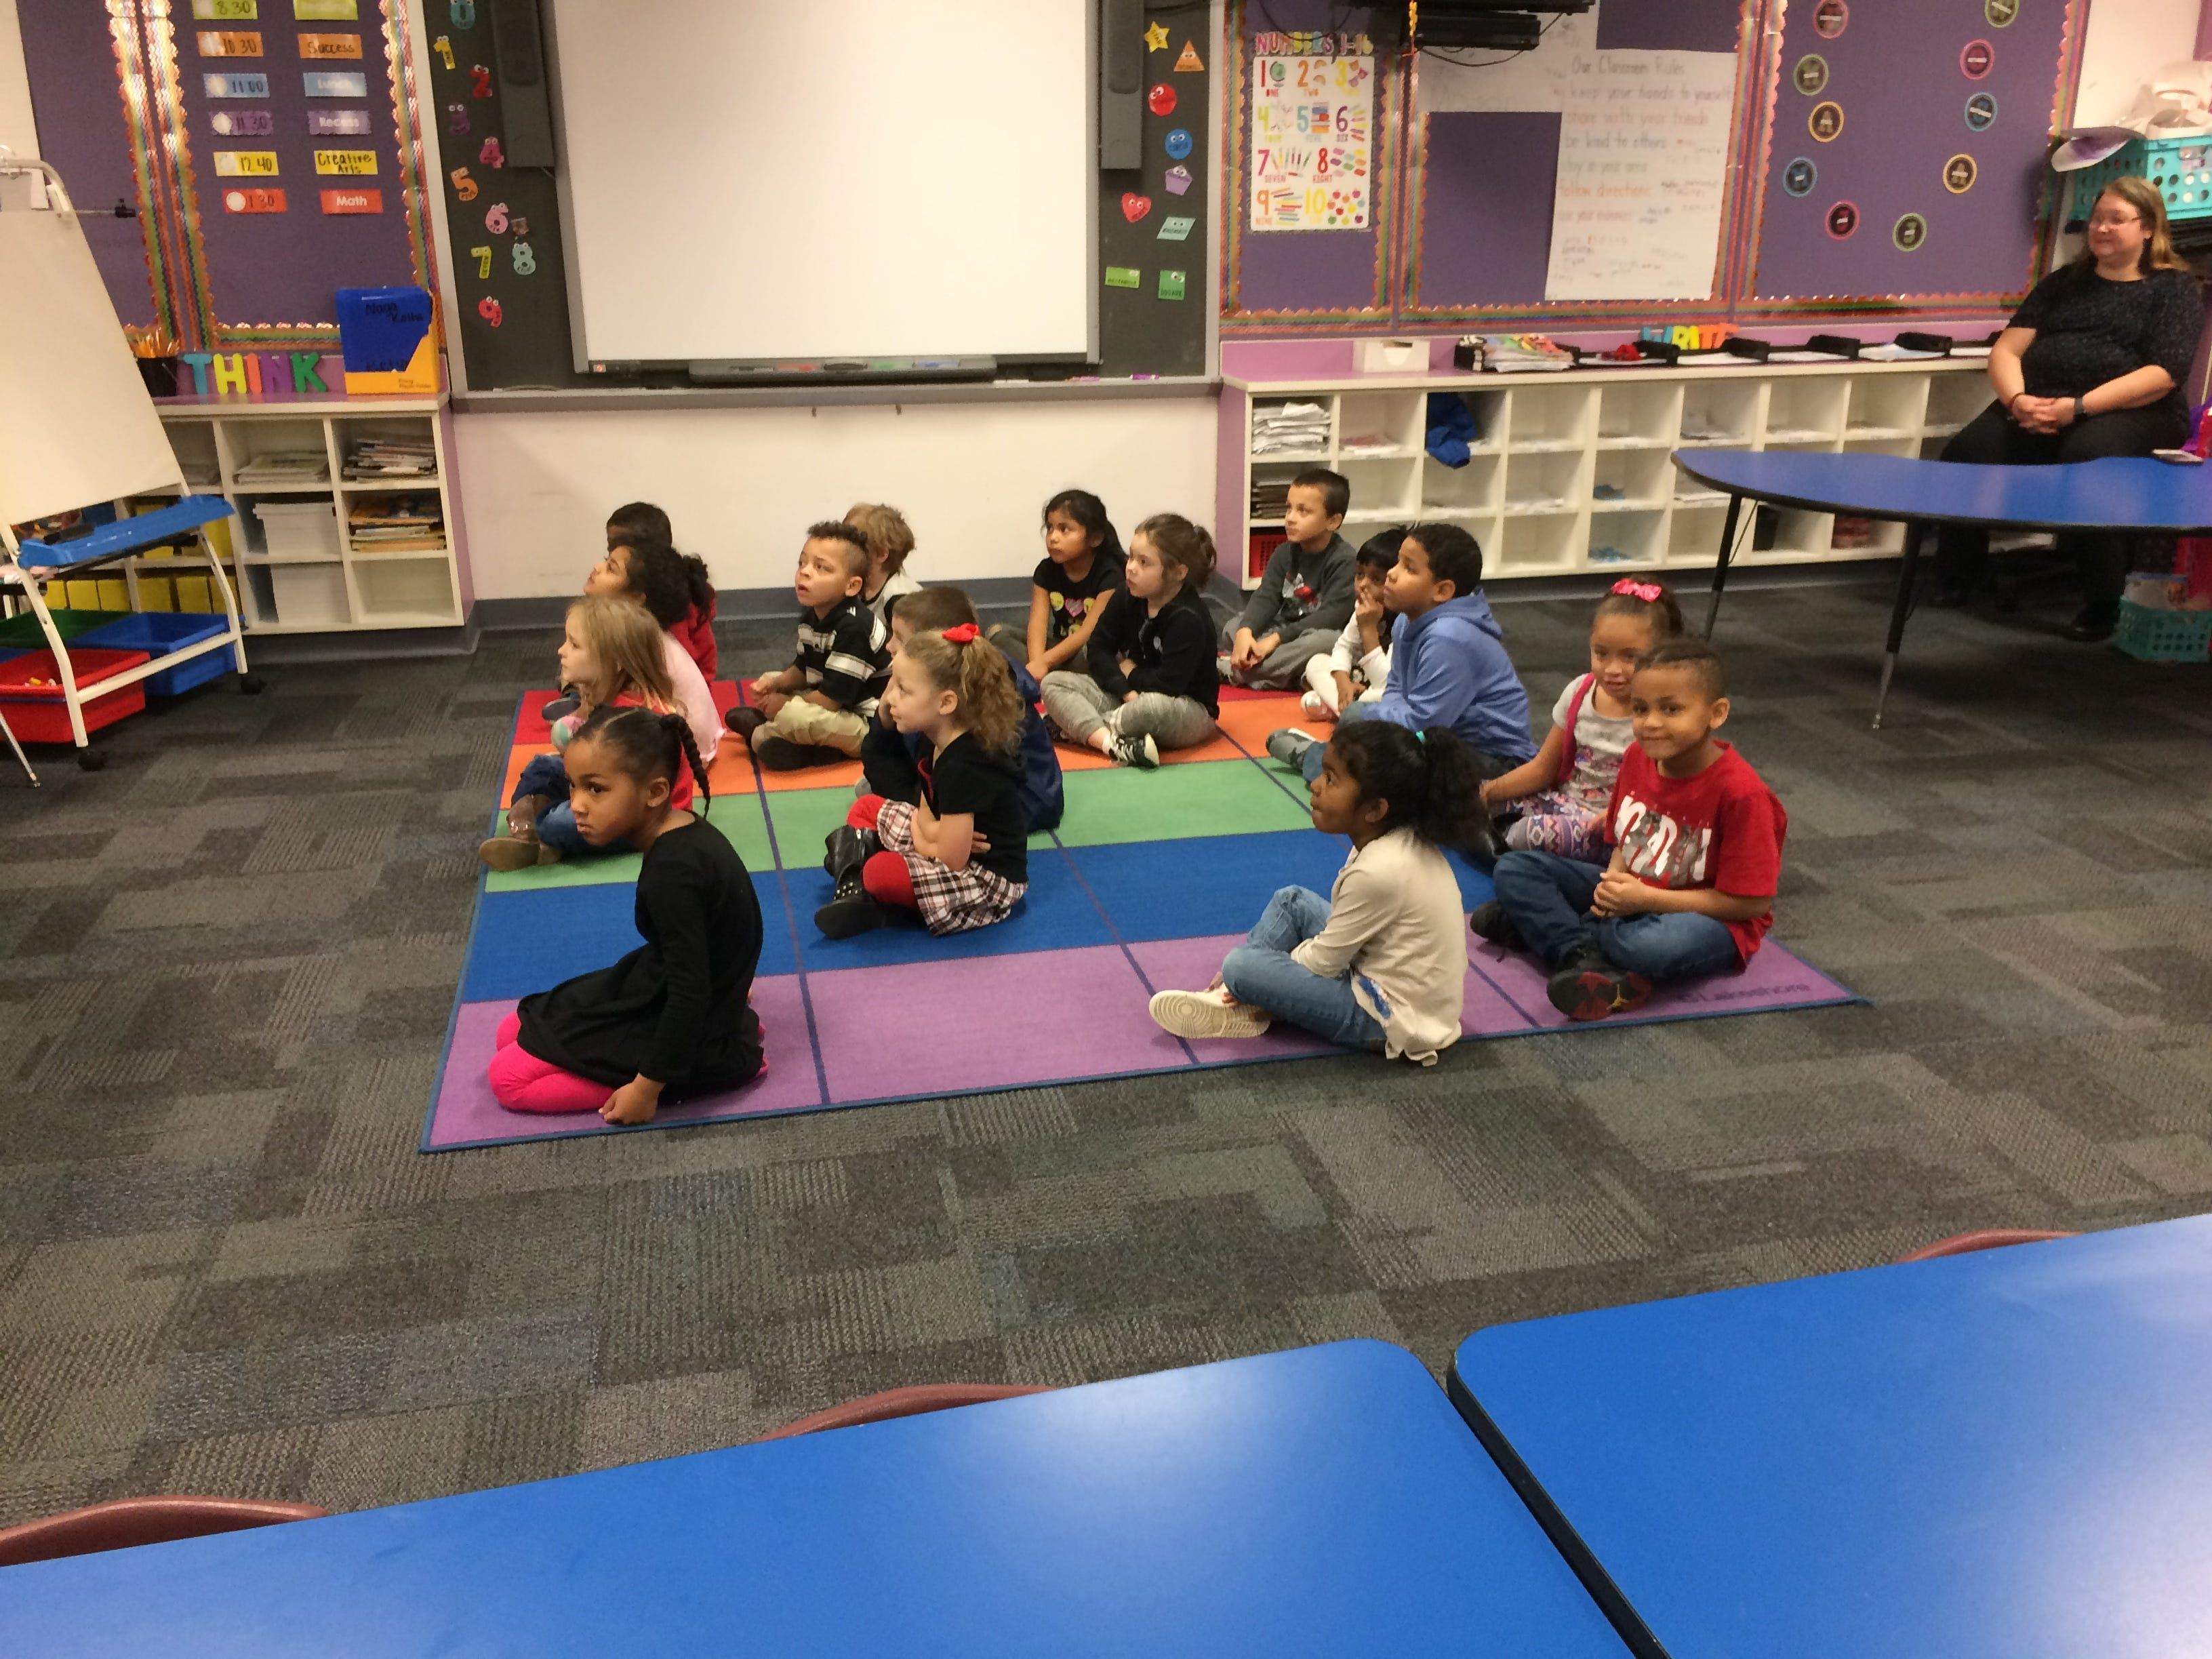 Vaile Elementary kindergartners listen Tuesday as they are honored by Richmond Police Department for their response to finding what turned out to be a toy gun on the playground.